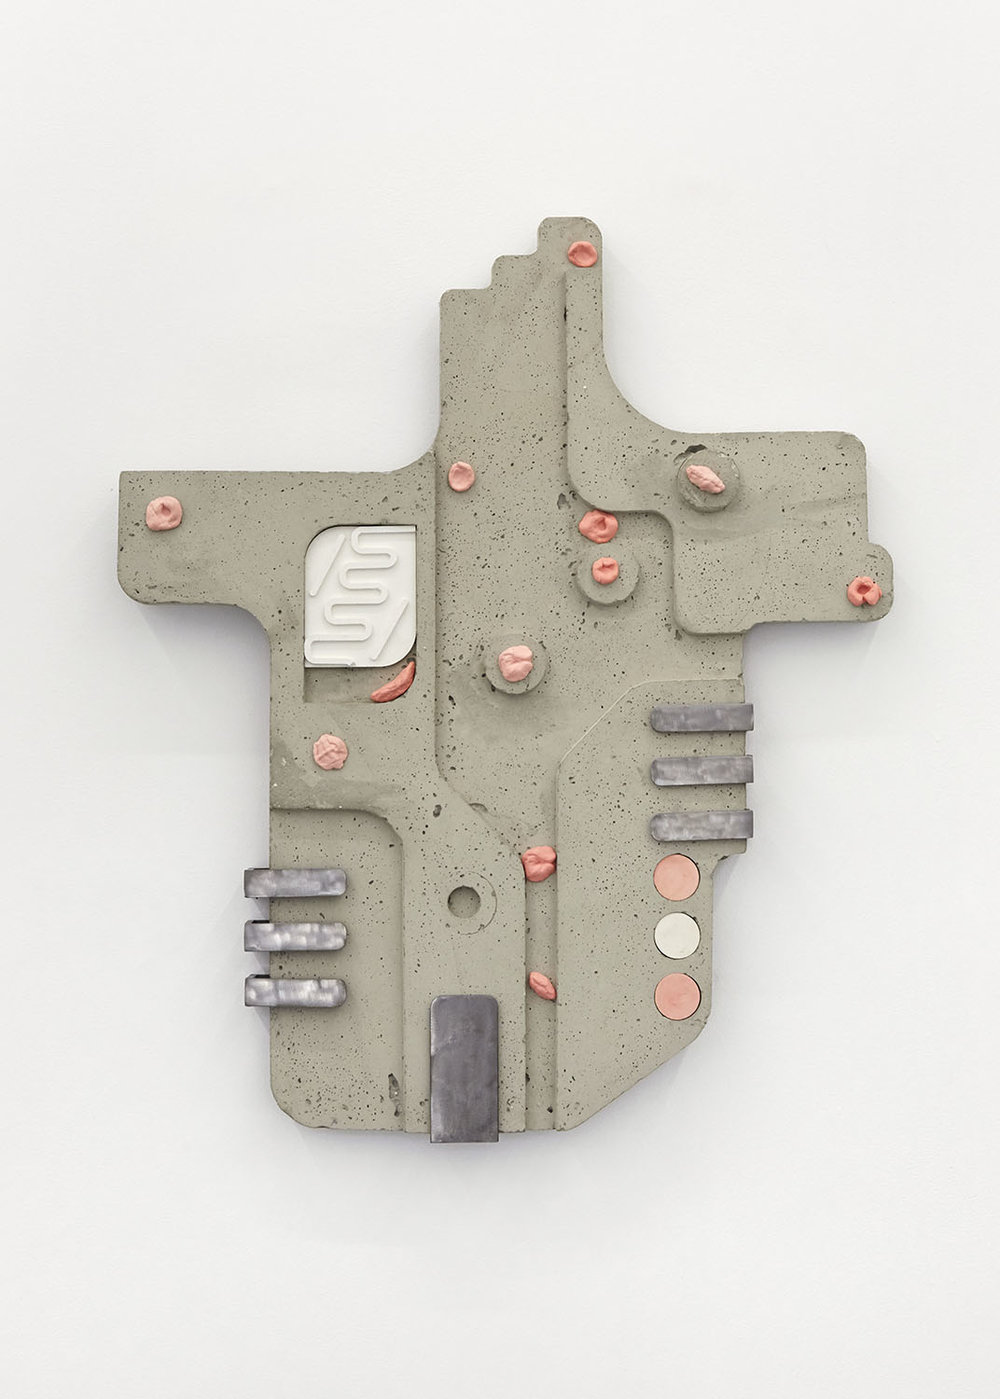 Rubble Bubble (mark) Concrete, steel, jesmonite cast chewing gum 69 x 58 x 4.5cm, 2018